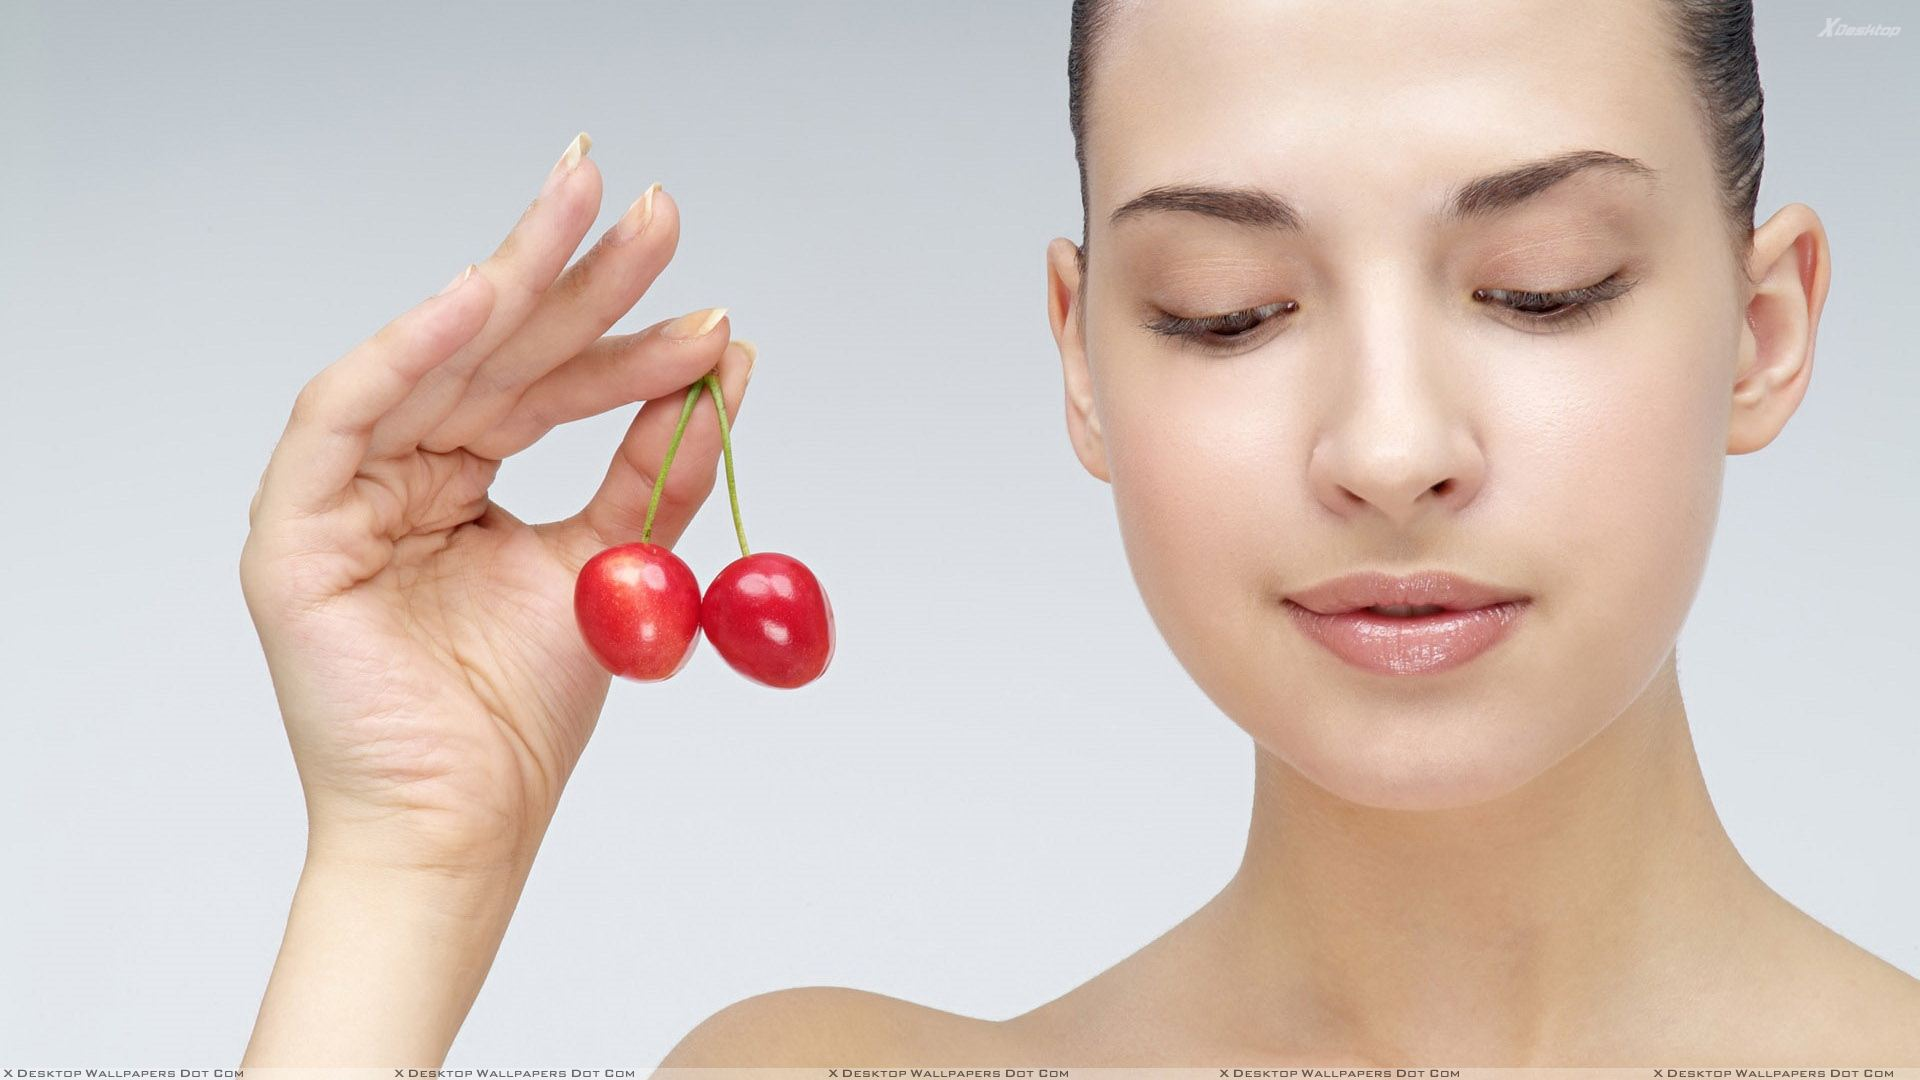 Girl Showing Red Cherry In Hand Photoshoot